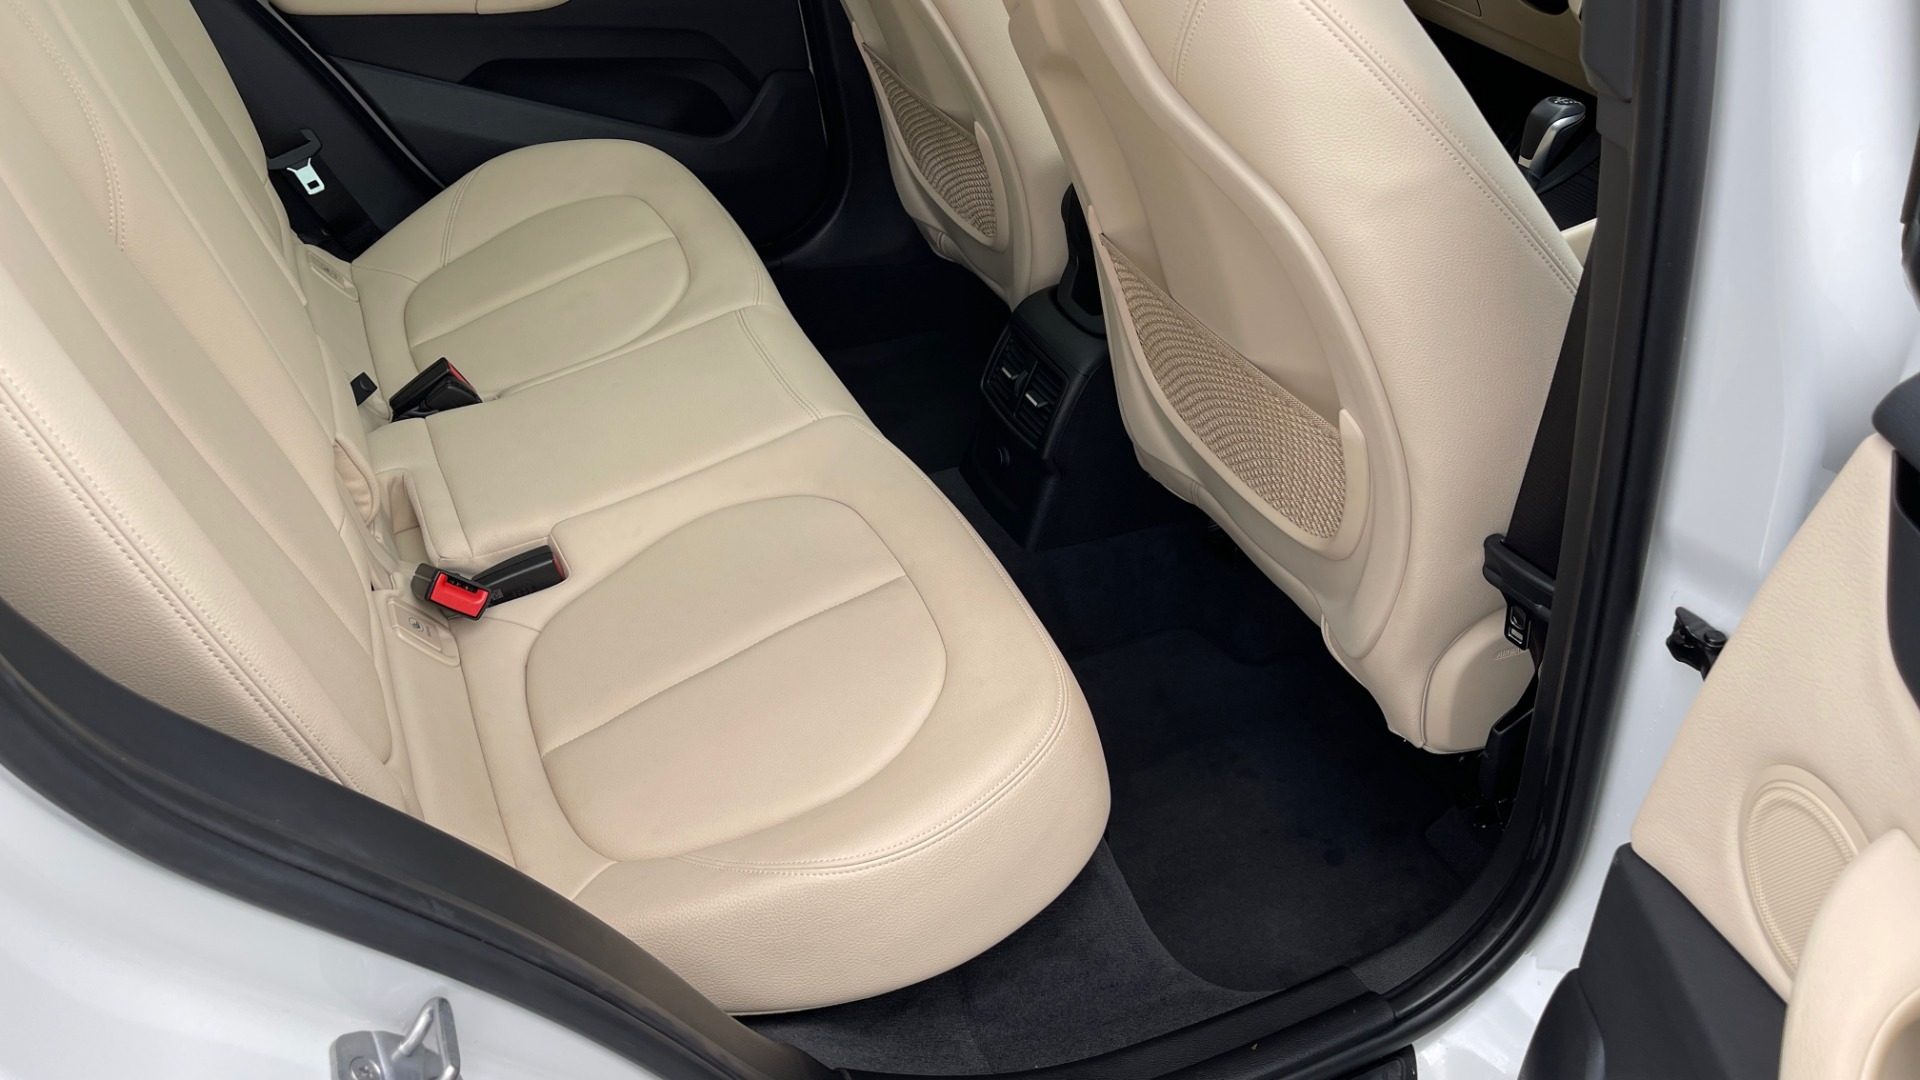 Used 2018 BMW X1 XDRIVE28I / CONV PKG / PANO-ROOF / HTD STS / PARK ASST / REARVIEW for sale $30,995 at Formula Imports in Charlotte NC 28227 77